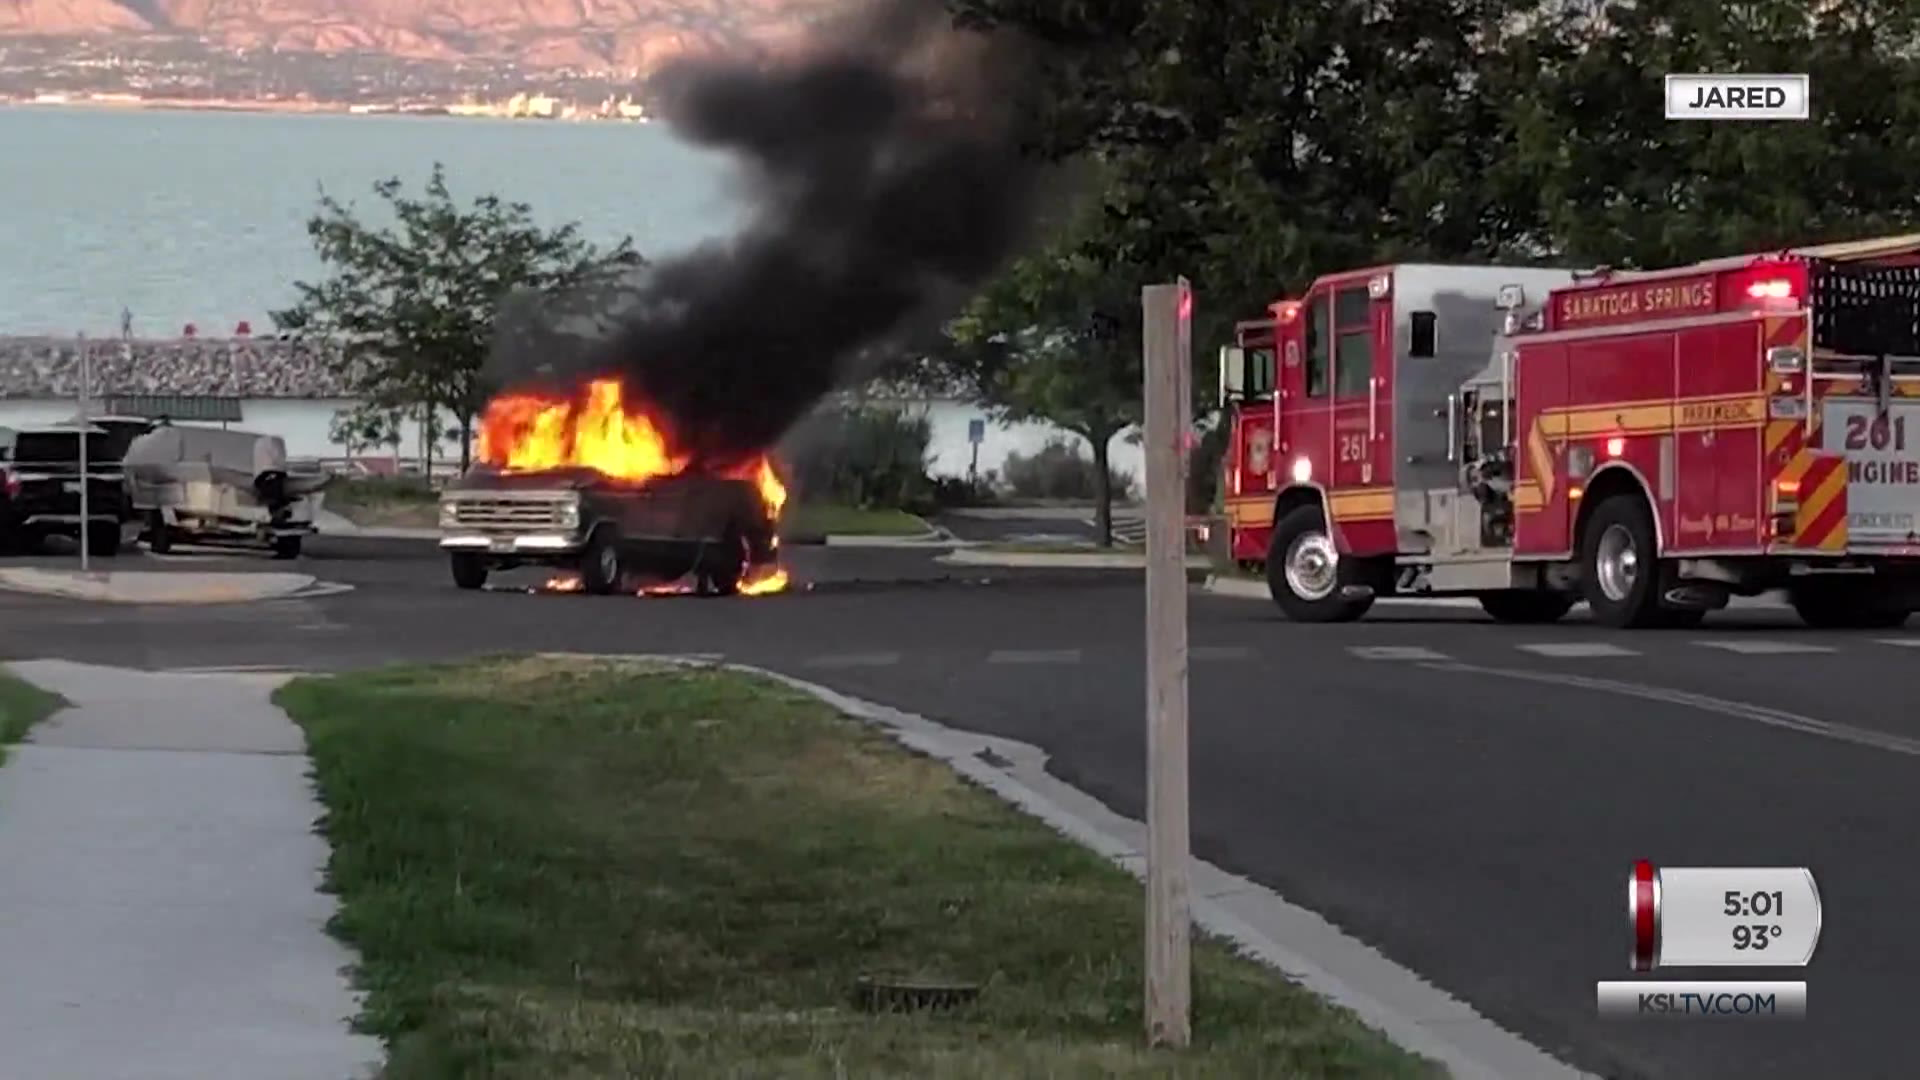 4-year-old, Parents Seriously Burned in Saratoga Springs Van Fire